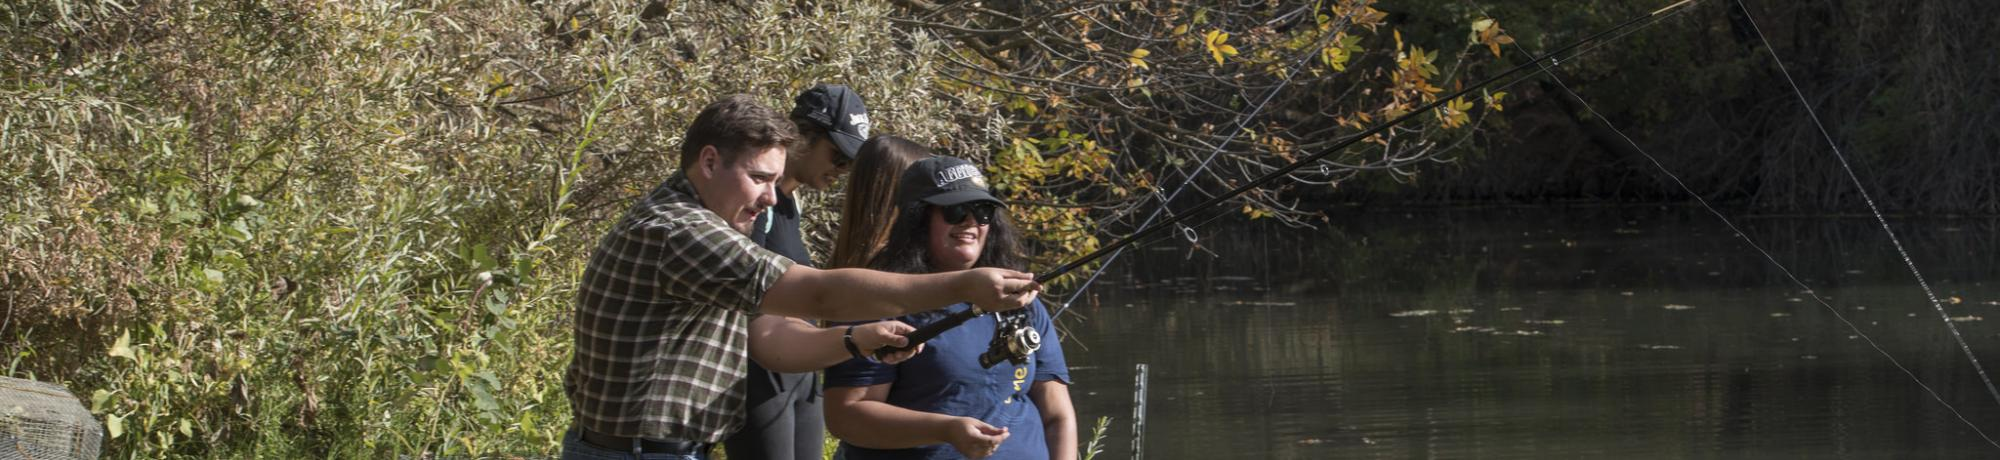 Image of students being taught how to fish at UC Davis Putah Creek Riparian Reserve.